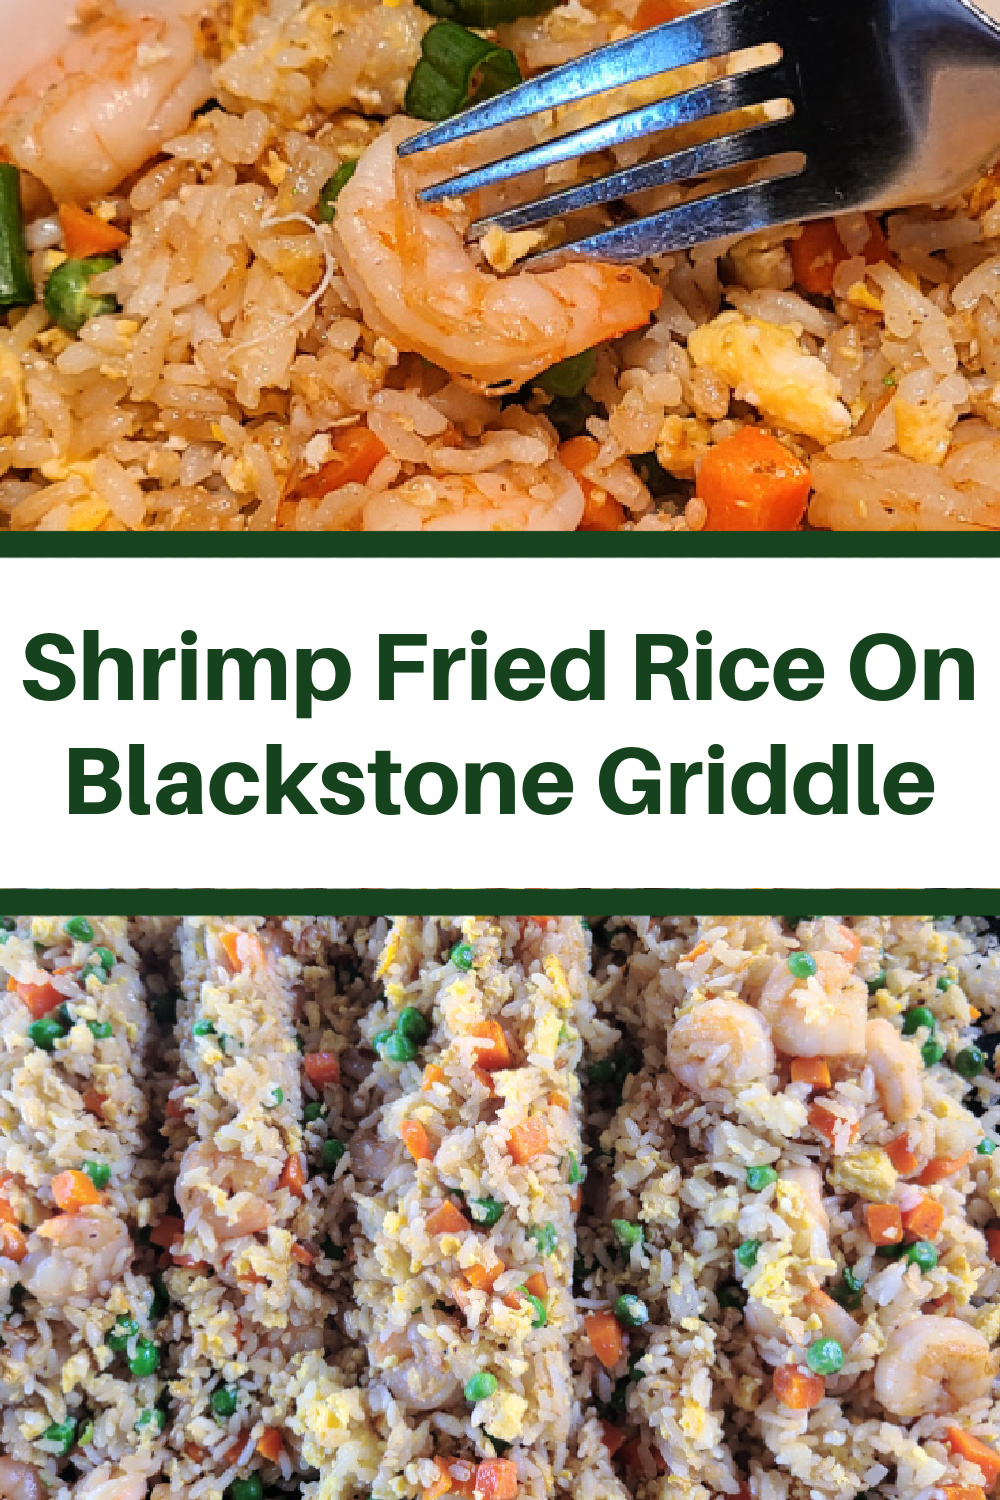 Shrimp Fried Rice On Blackstone Griddle is perfect quick weeknight dinner to make up! Make on the Blackstone to keep the kitchen clean and quick clean up! Use frozen carrots and peas with a rice cooker for an easy dinner the whole family will eat! Cook this hibachi style outside and look like a professional chef!